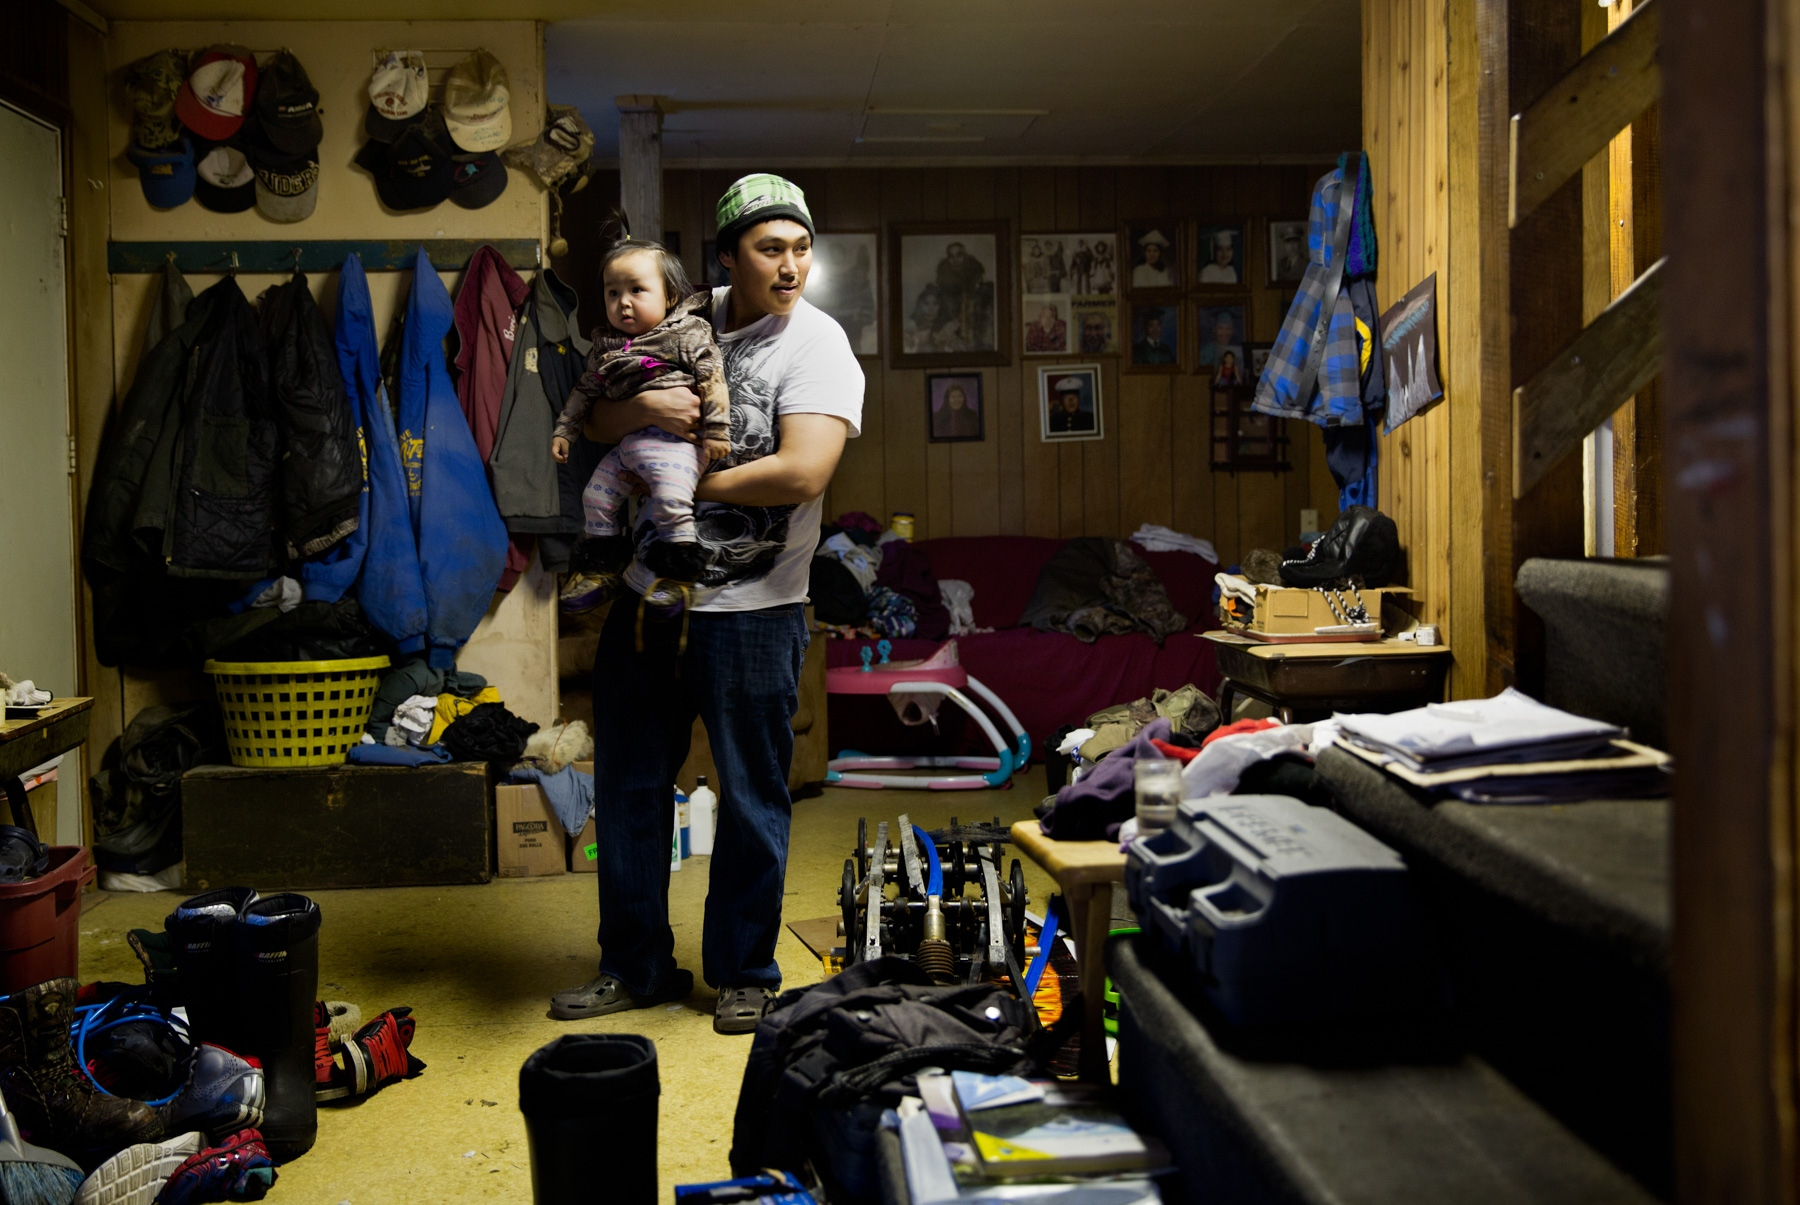 A resident of Shishmaref holds his daughter in their home that he shares with his father. Residents on the island face an uncertain future — it faces inundation because of melting permafrost and the rising water levels resulting from climate change.